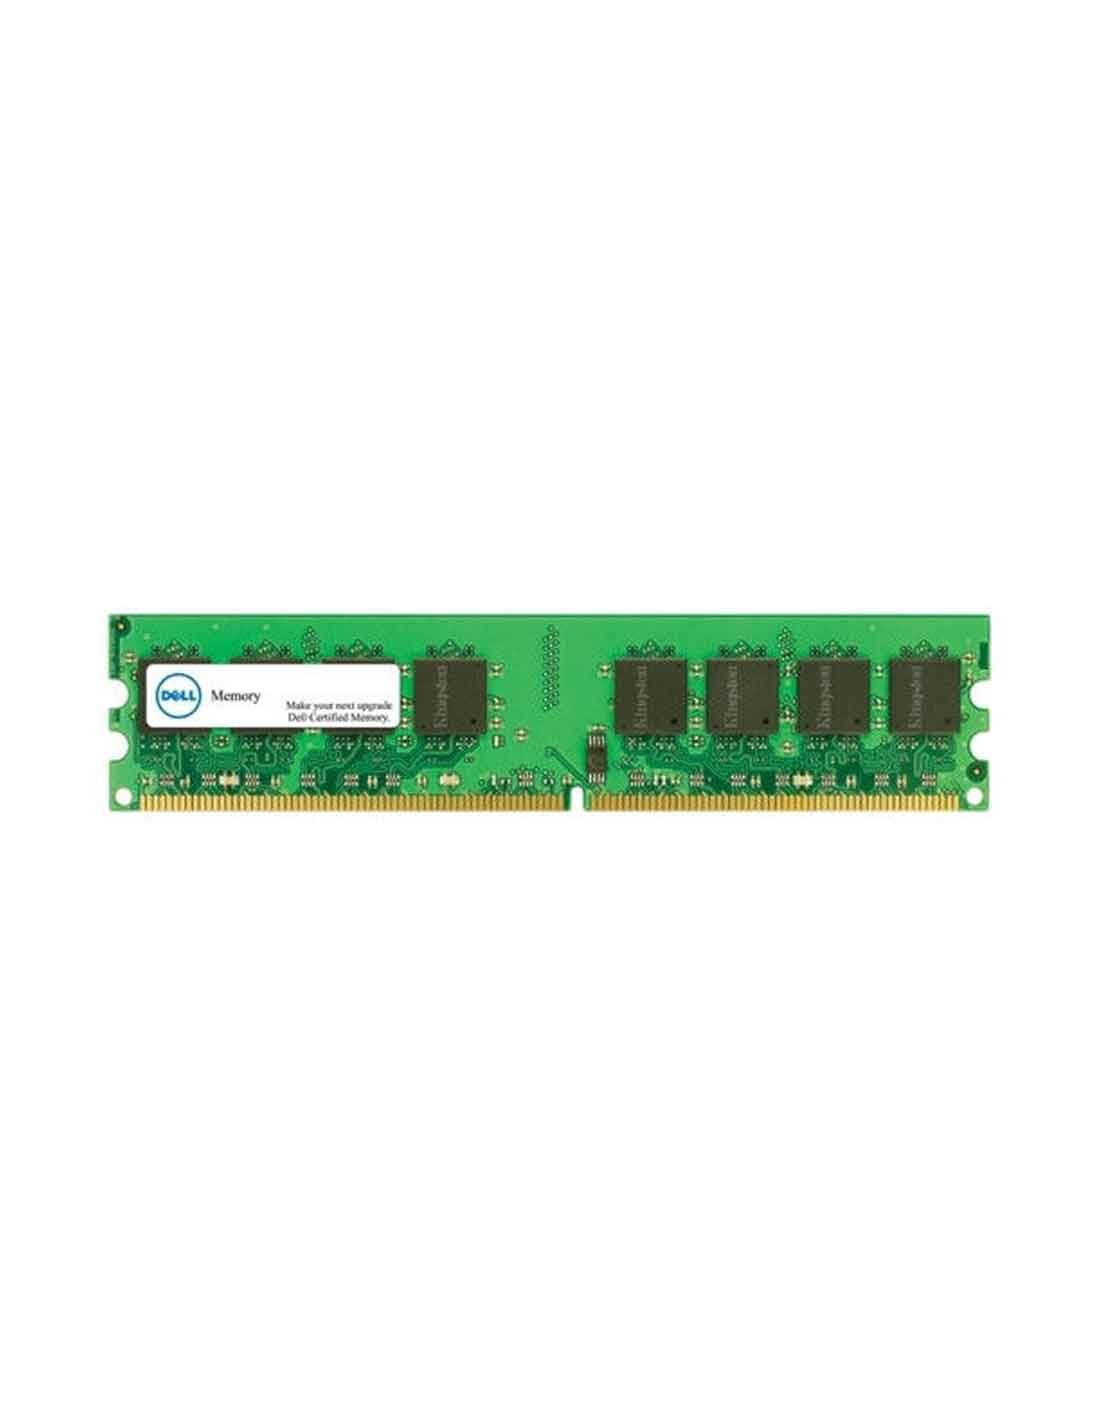 Dell 16GB Certified Memory Module at a cheap price and fast free delivery in Dubai, UAE